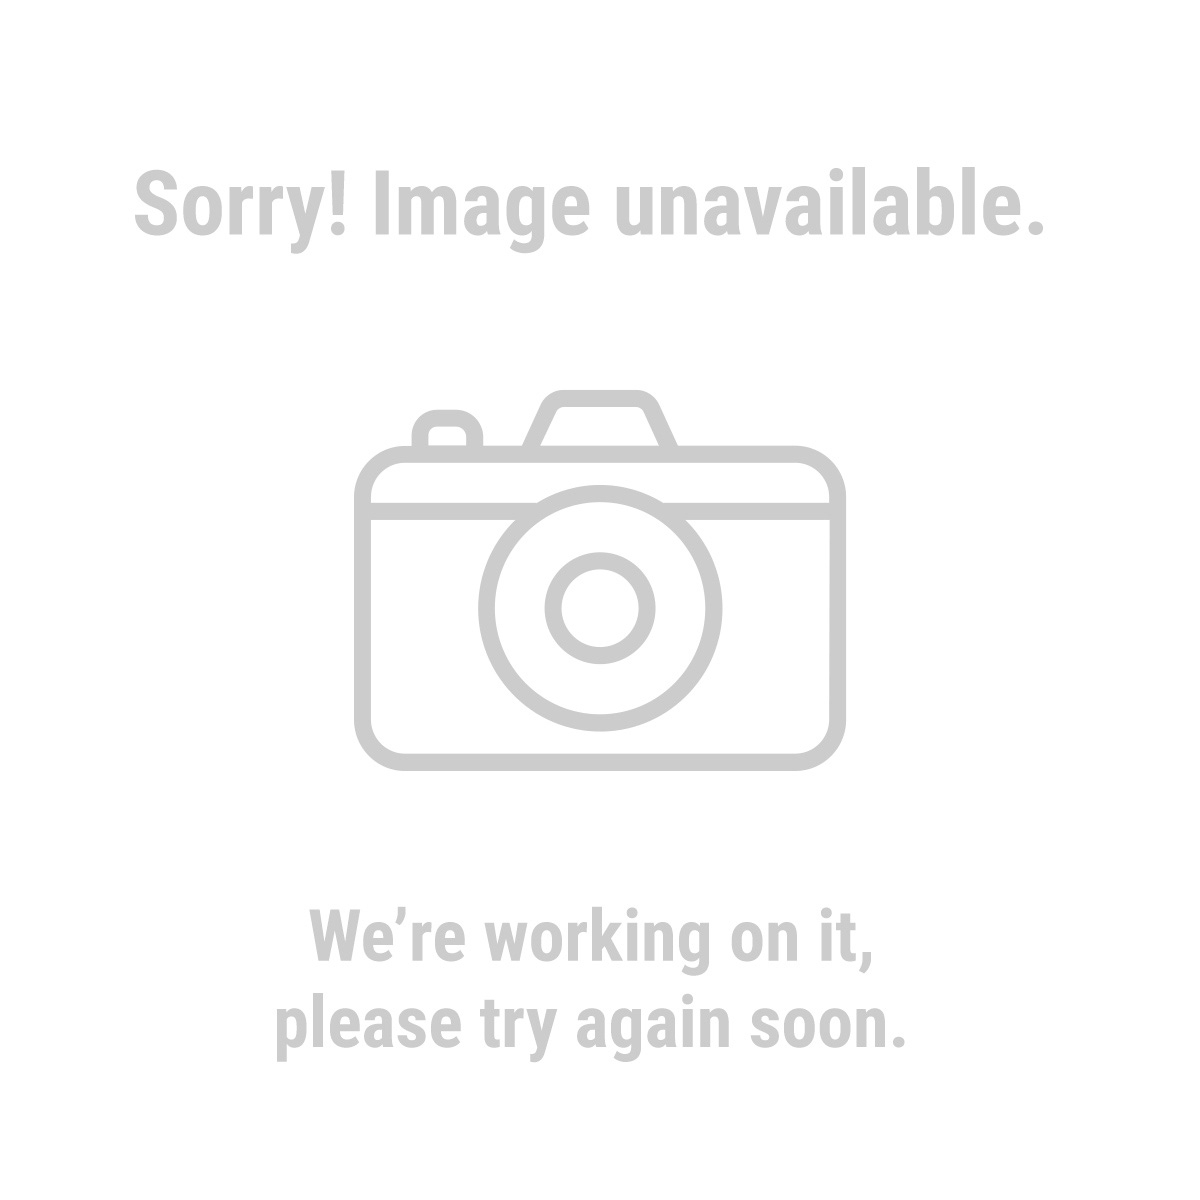 HARDY 60640 String Knit Gloves 6 pair